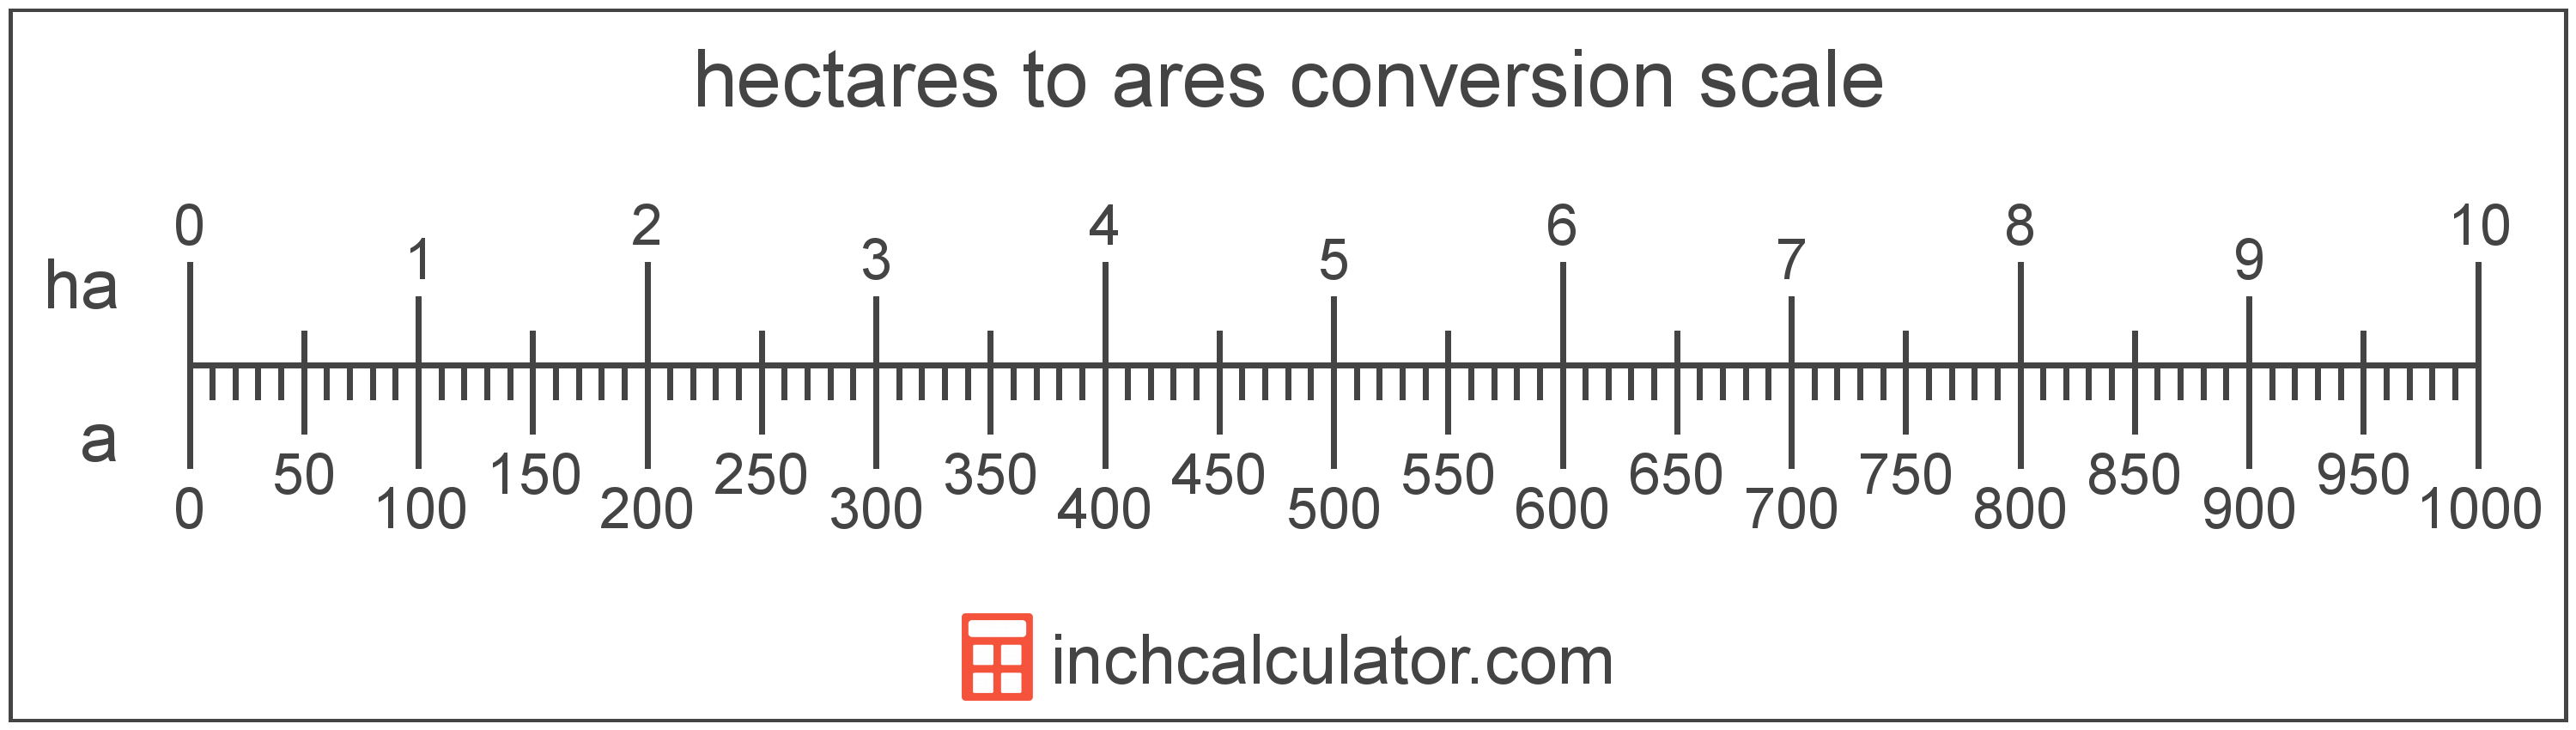 conversion scale showing ares and equivalent hectares area values